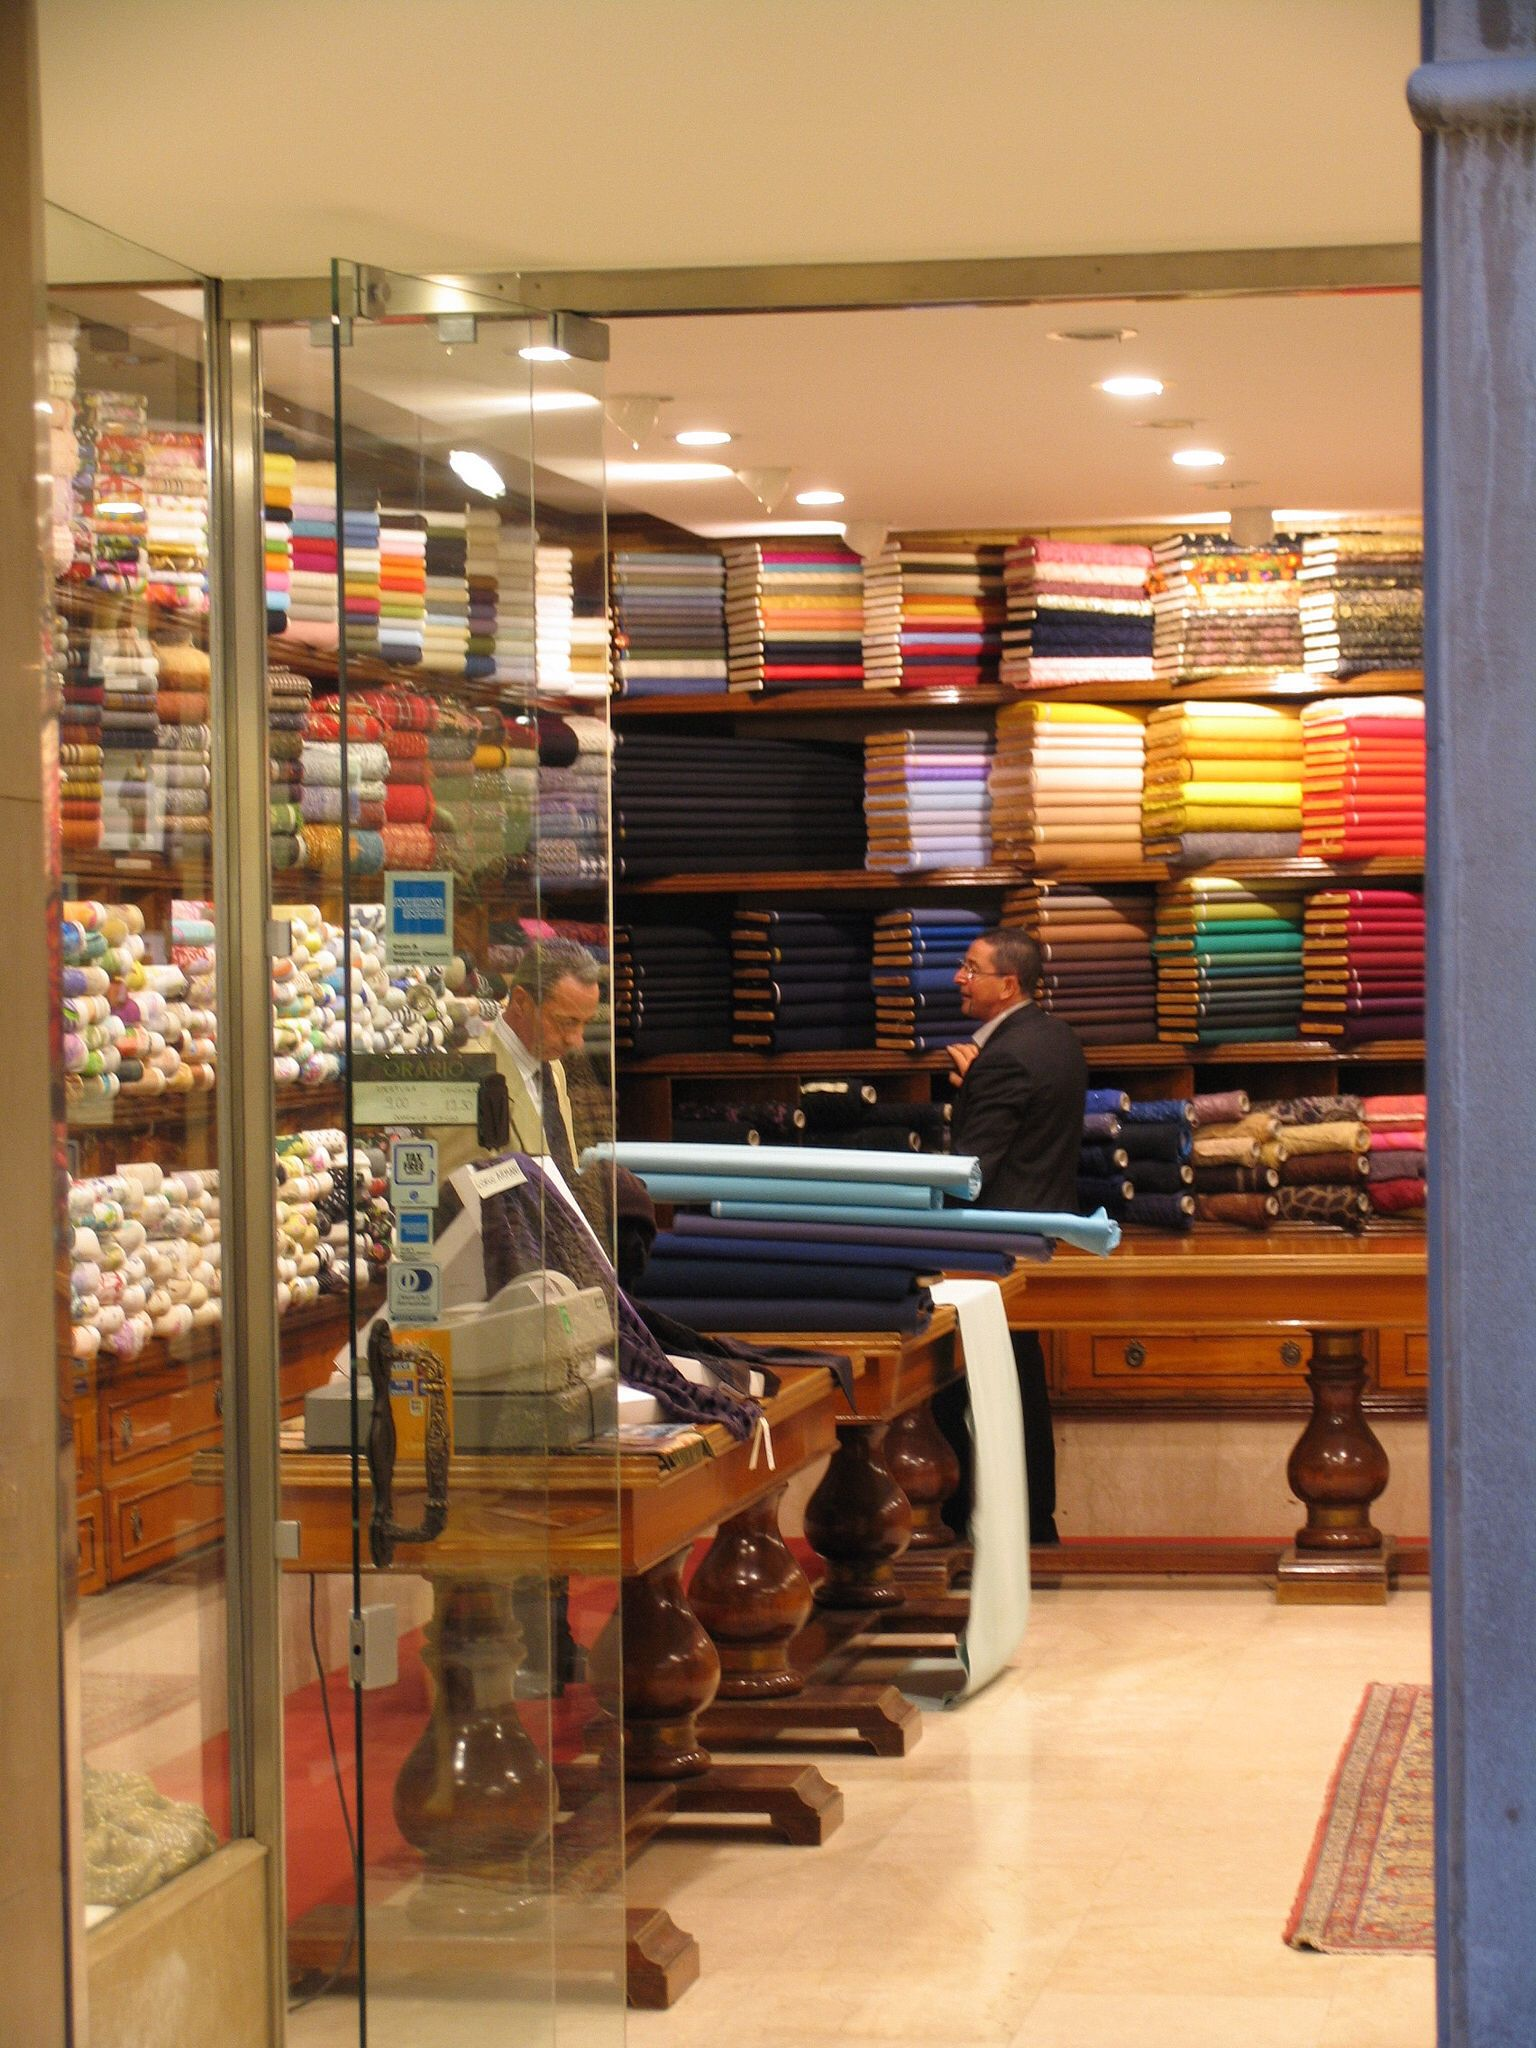 Venice Shop Fabric Installationfabric Shopstore Displaysdisplay Ideas Venicefabricsshop